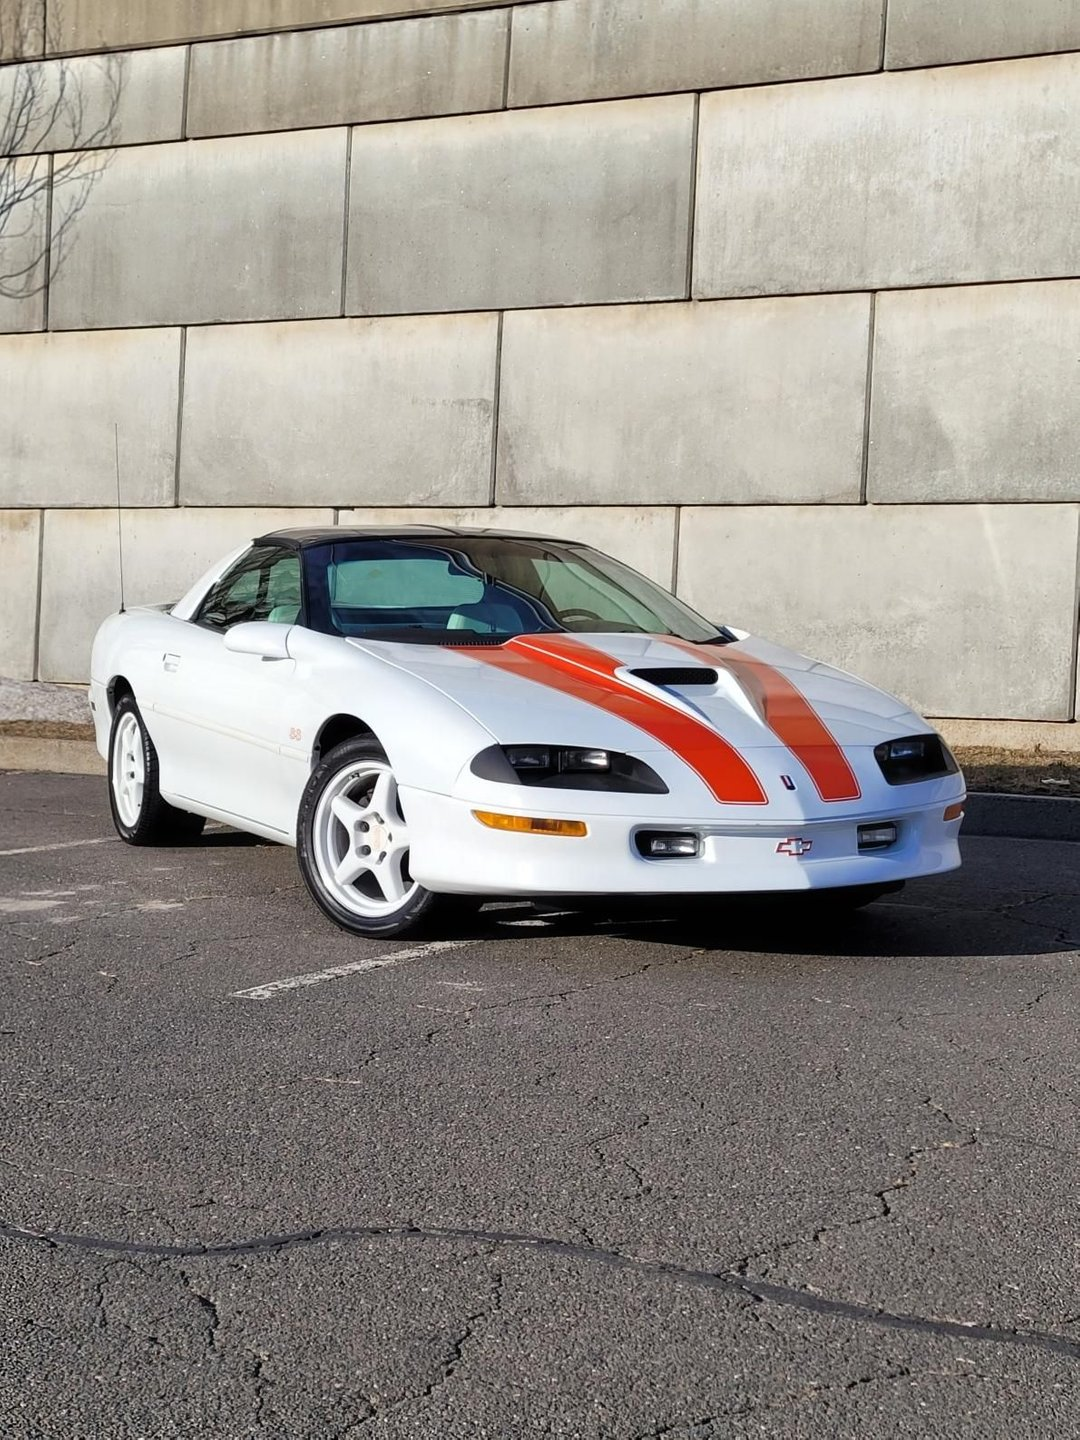 1997 Chevrolet Camaro Classics for Sale - Classics on